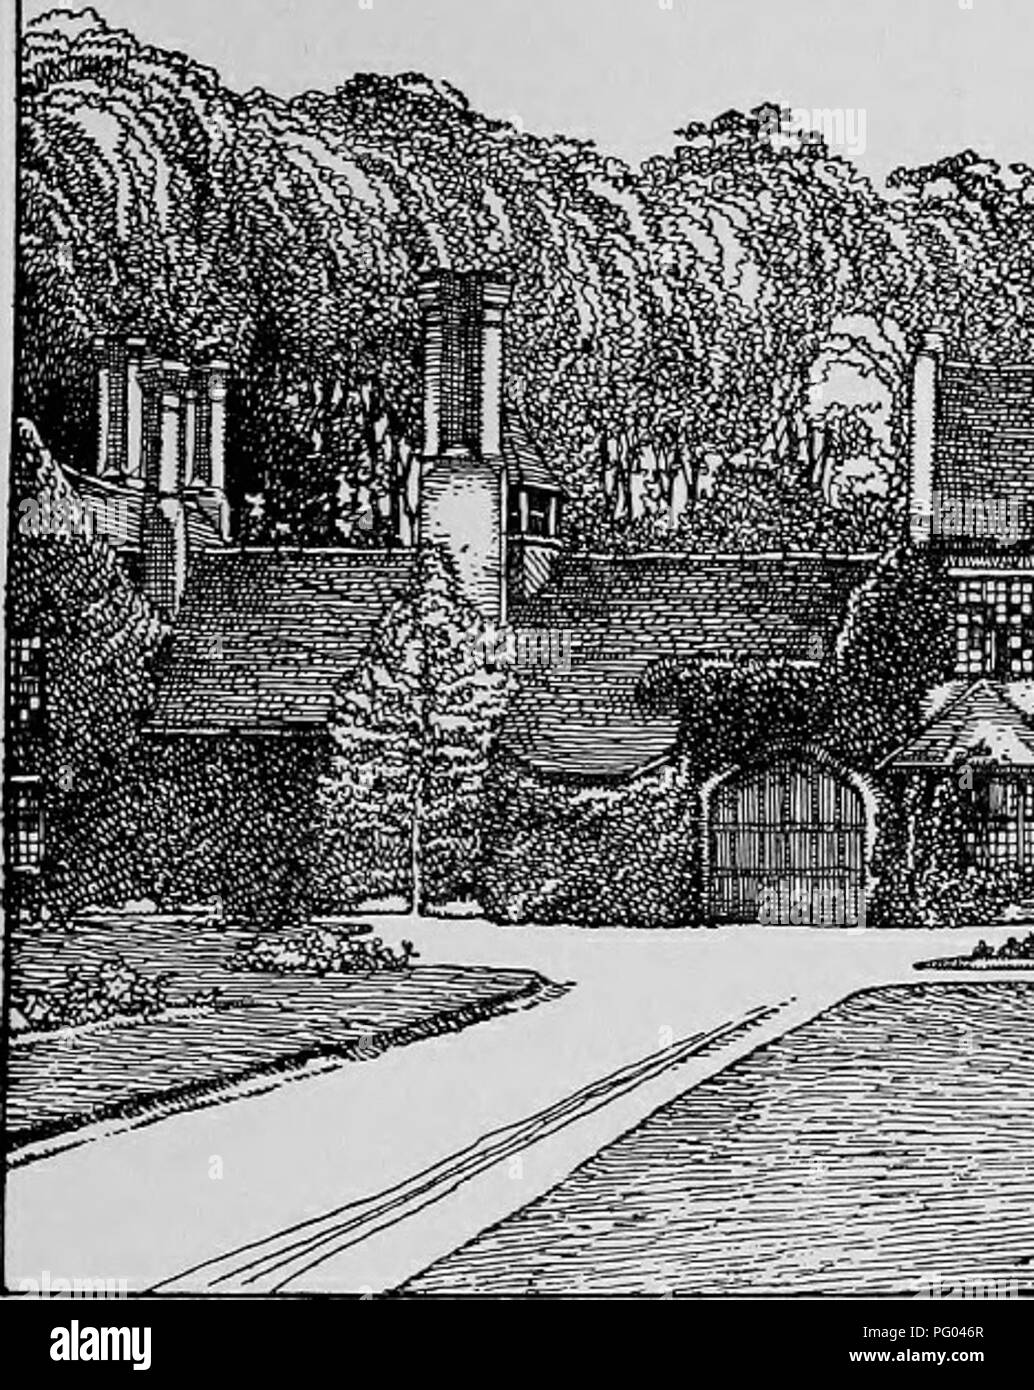 . The Victoria history of the county of Hertford. Natural history. BRAUGHING HUNDRED house and the river. All the old work is built of thin bricks and the roofs are tiled. The modern por- tions of the building were erected about 1872. In the centre of the west front is the wide entrance gateway, now inclosed and forming an entrance hall, with four-centred arches covered with cement; the original semi-octagonal flanking turrets have been demolished nearly to the ground level, one of them having been formed into a bay window ; the turrets next the courtyard still contain the oak newel stairs to  - Stock Image